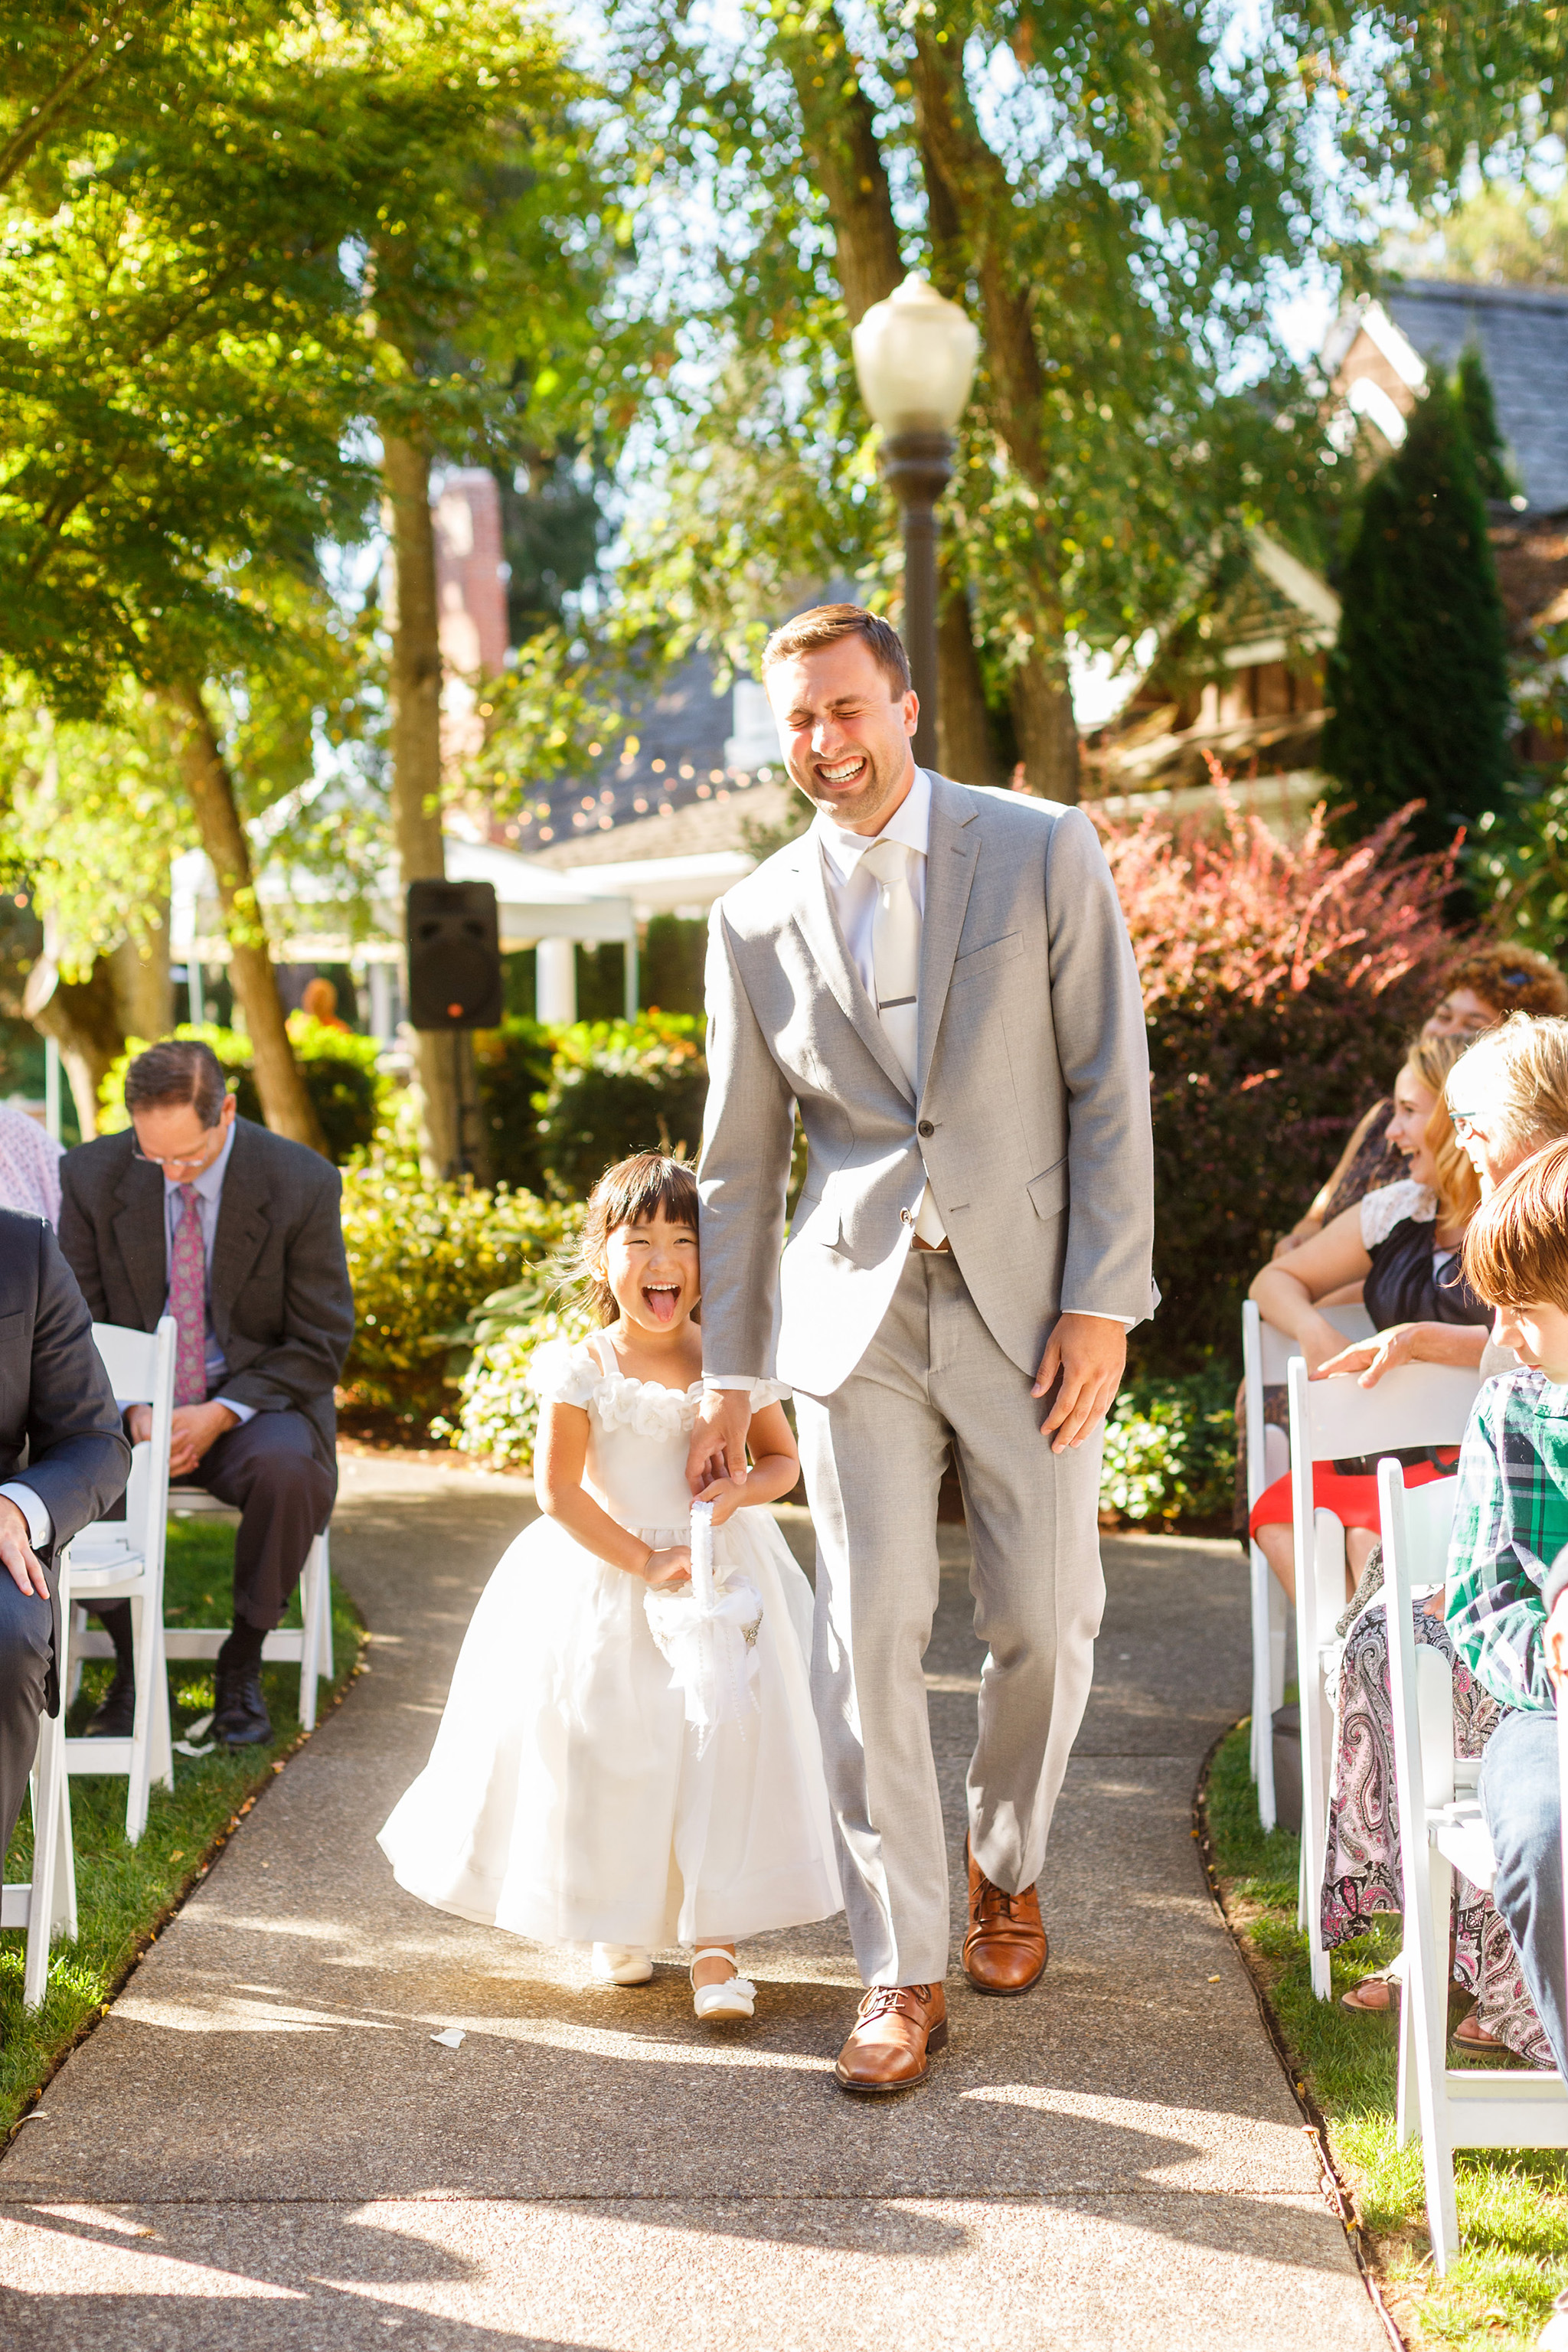 Groom walks flower girl down the aisle, laughing the whole way